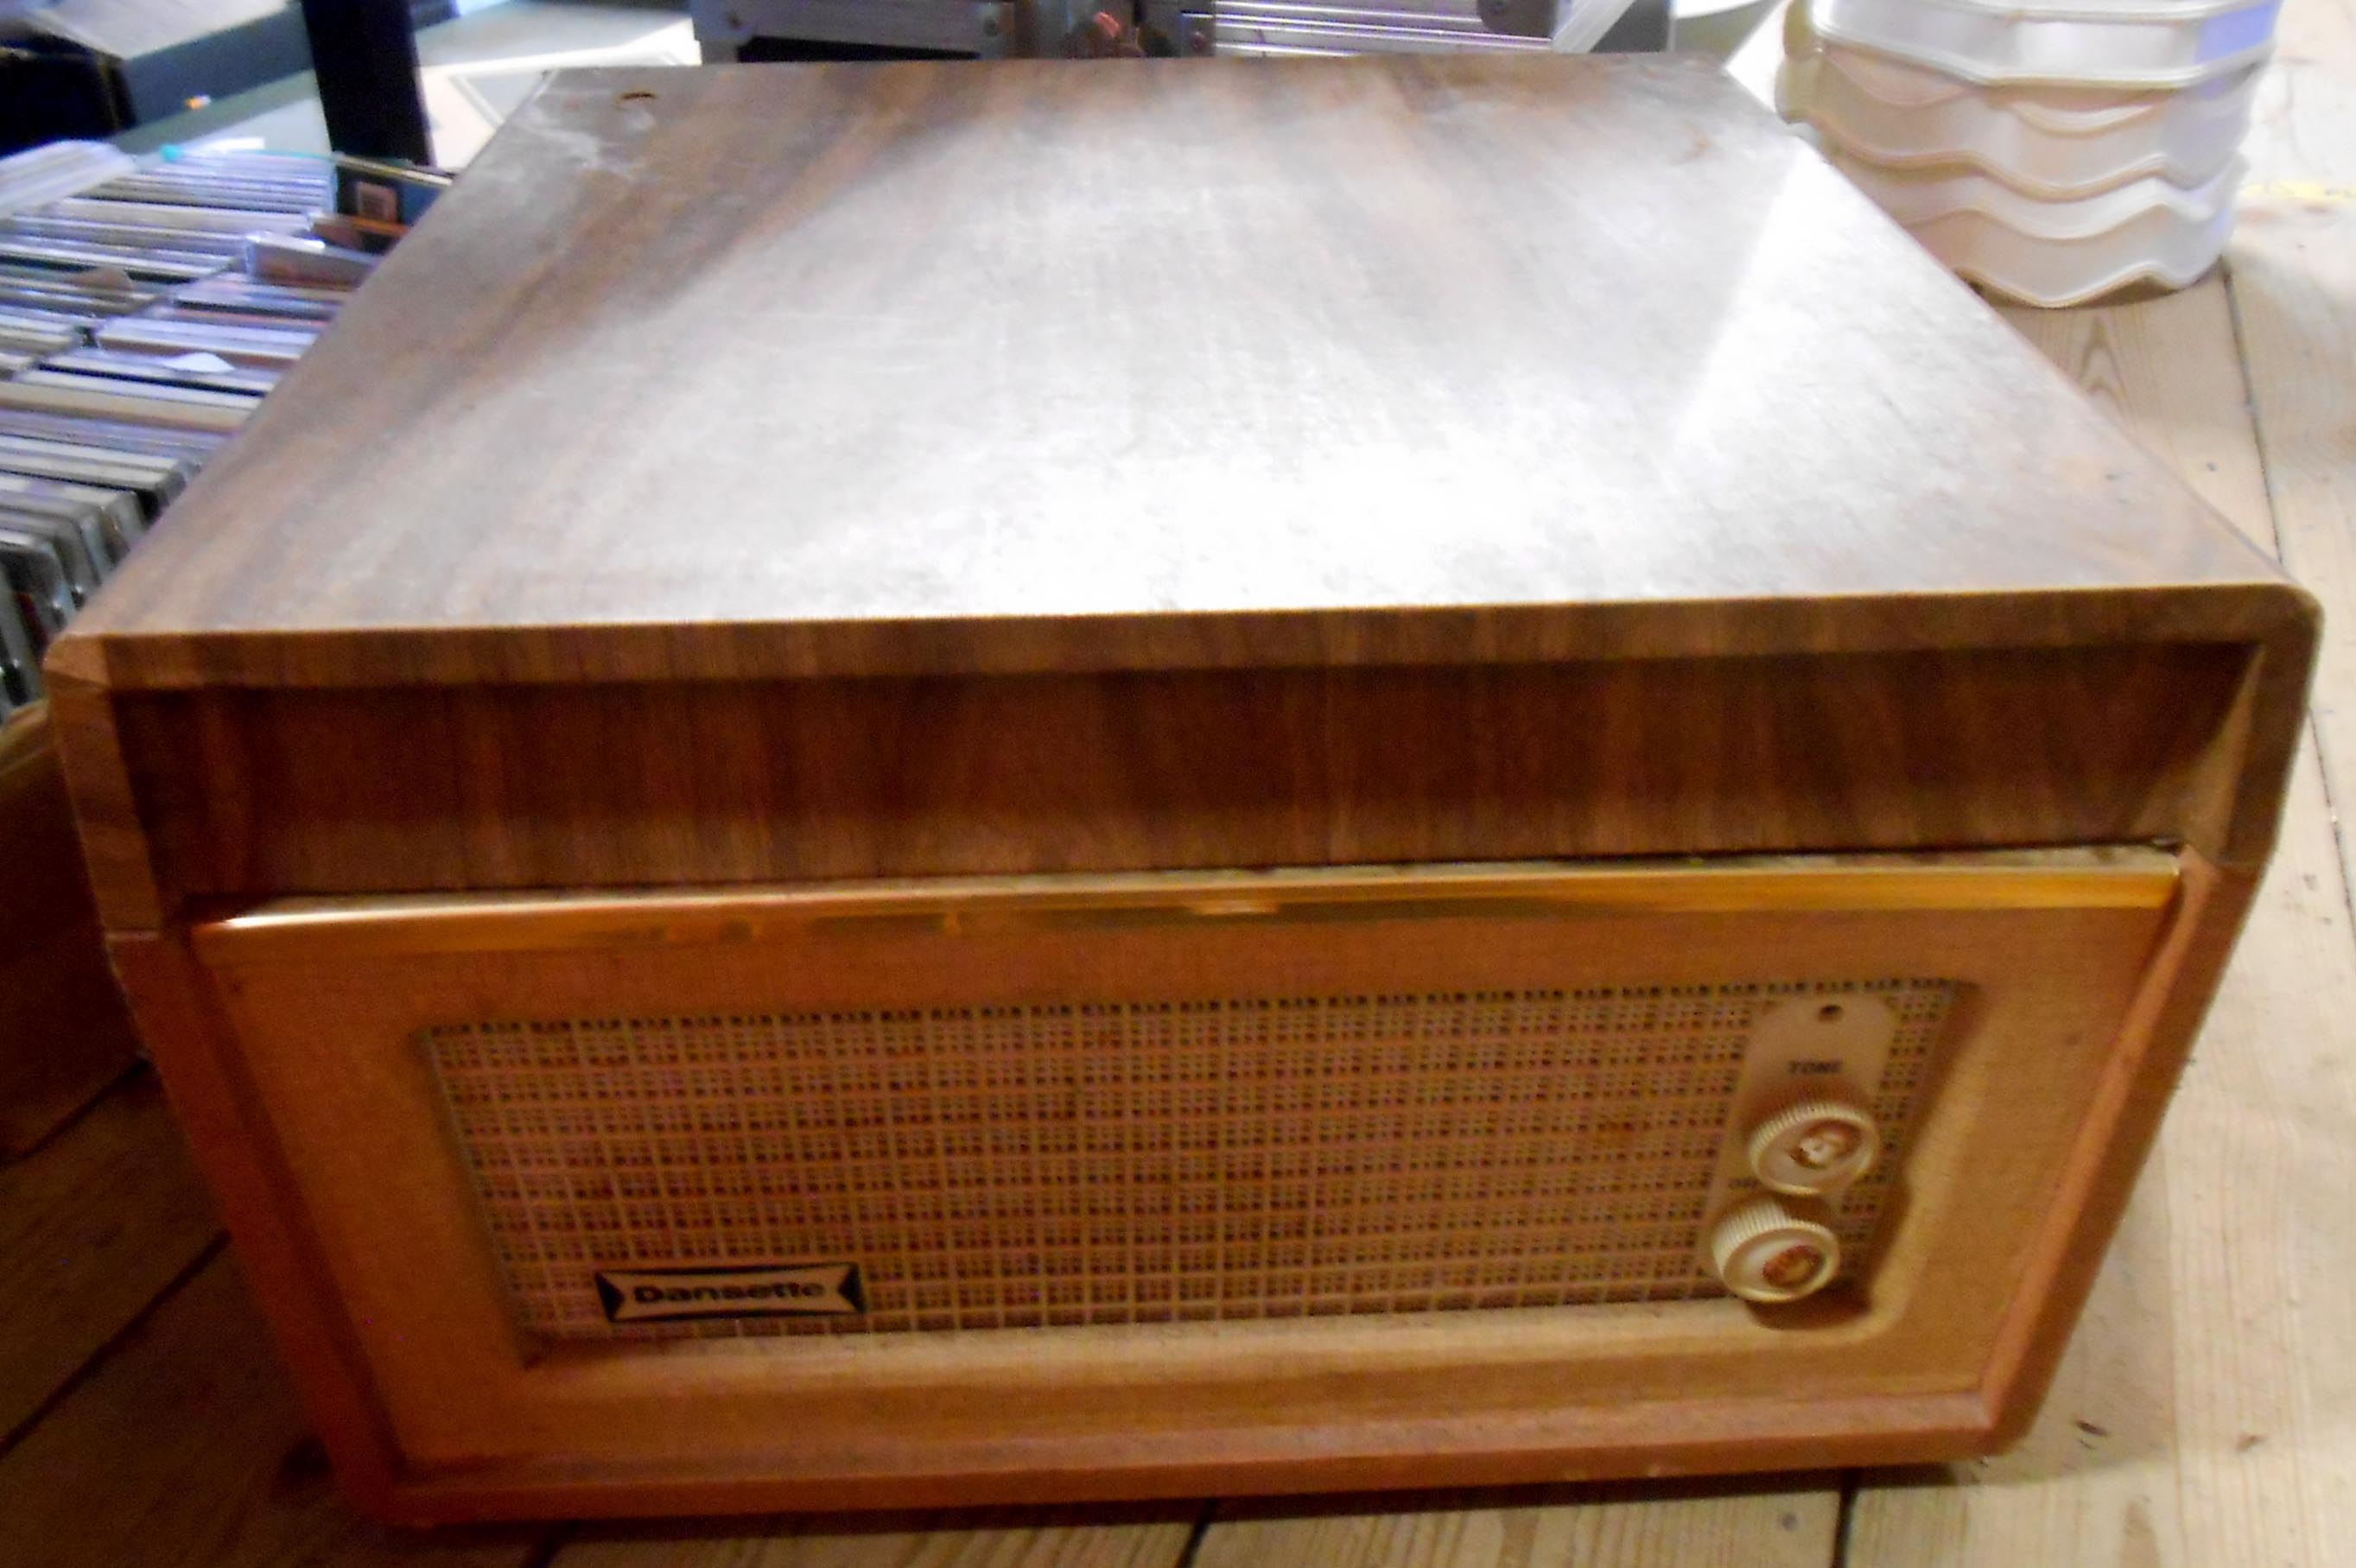 A vintage Dansette Bermuda portable record player with Monarch record deck - Image 2 of 2